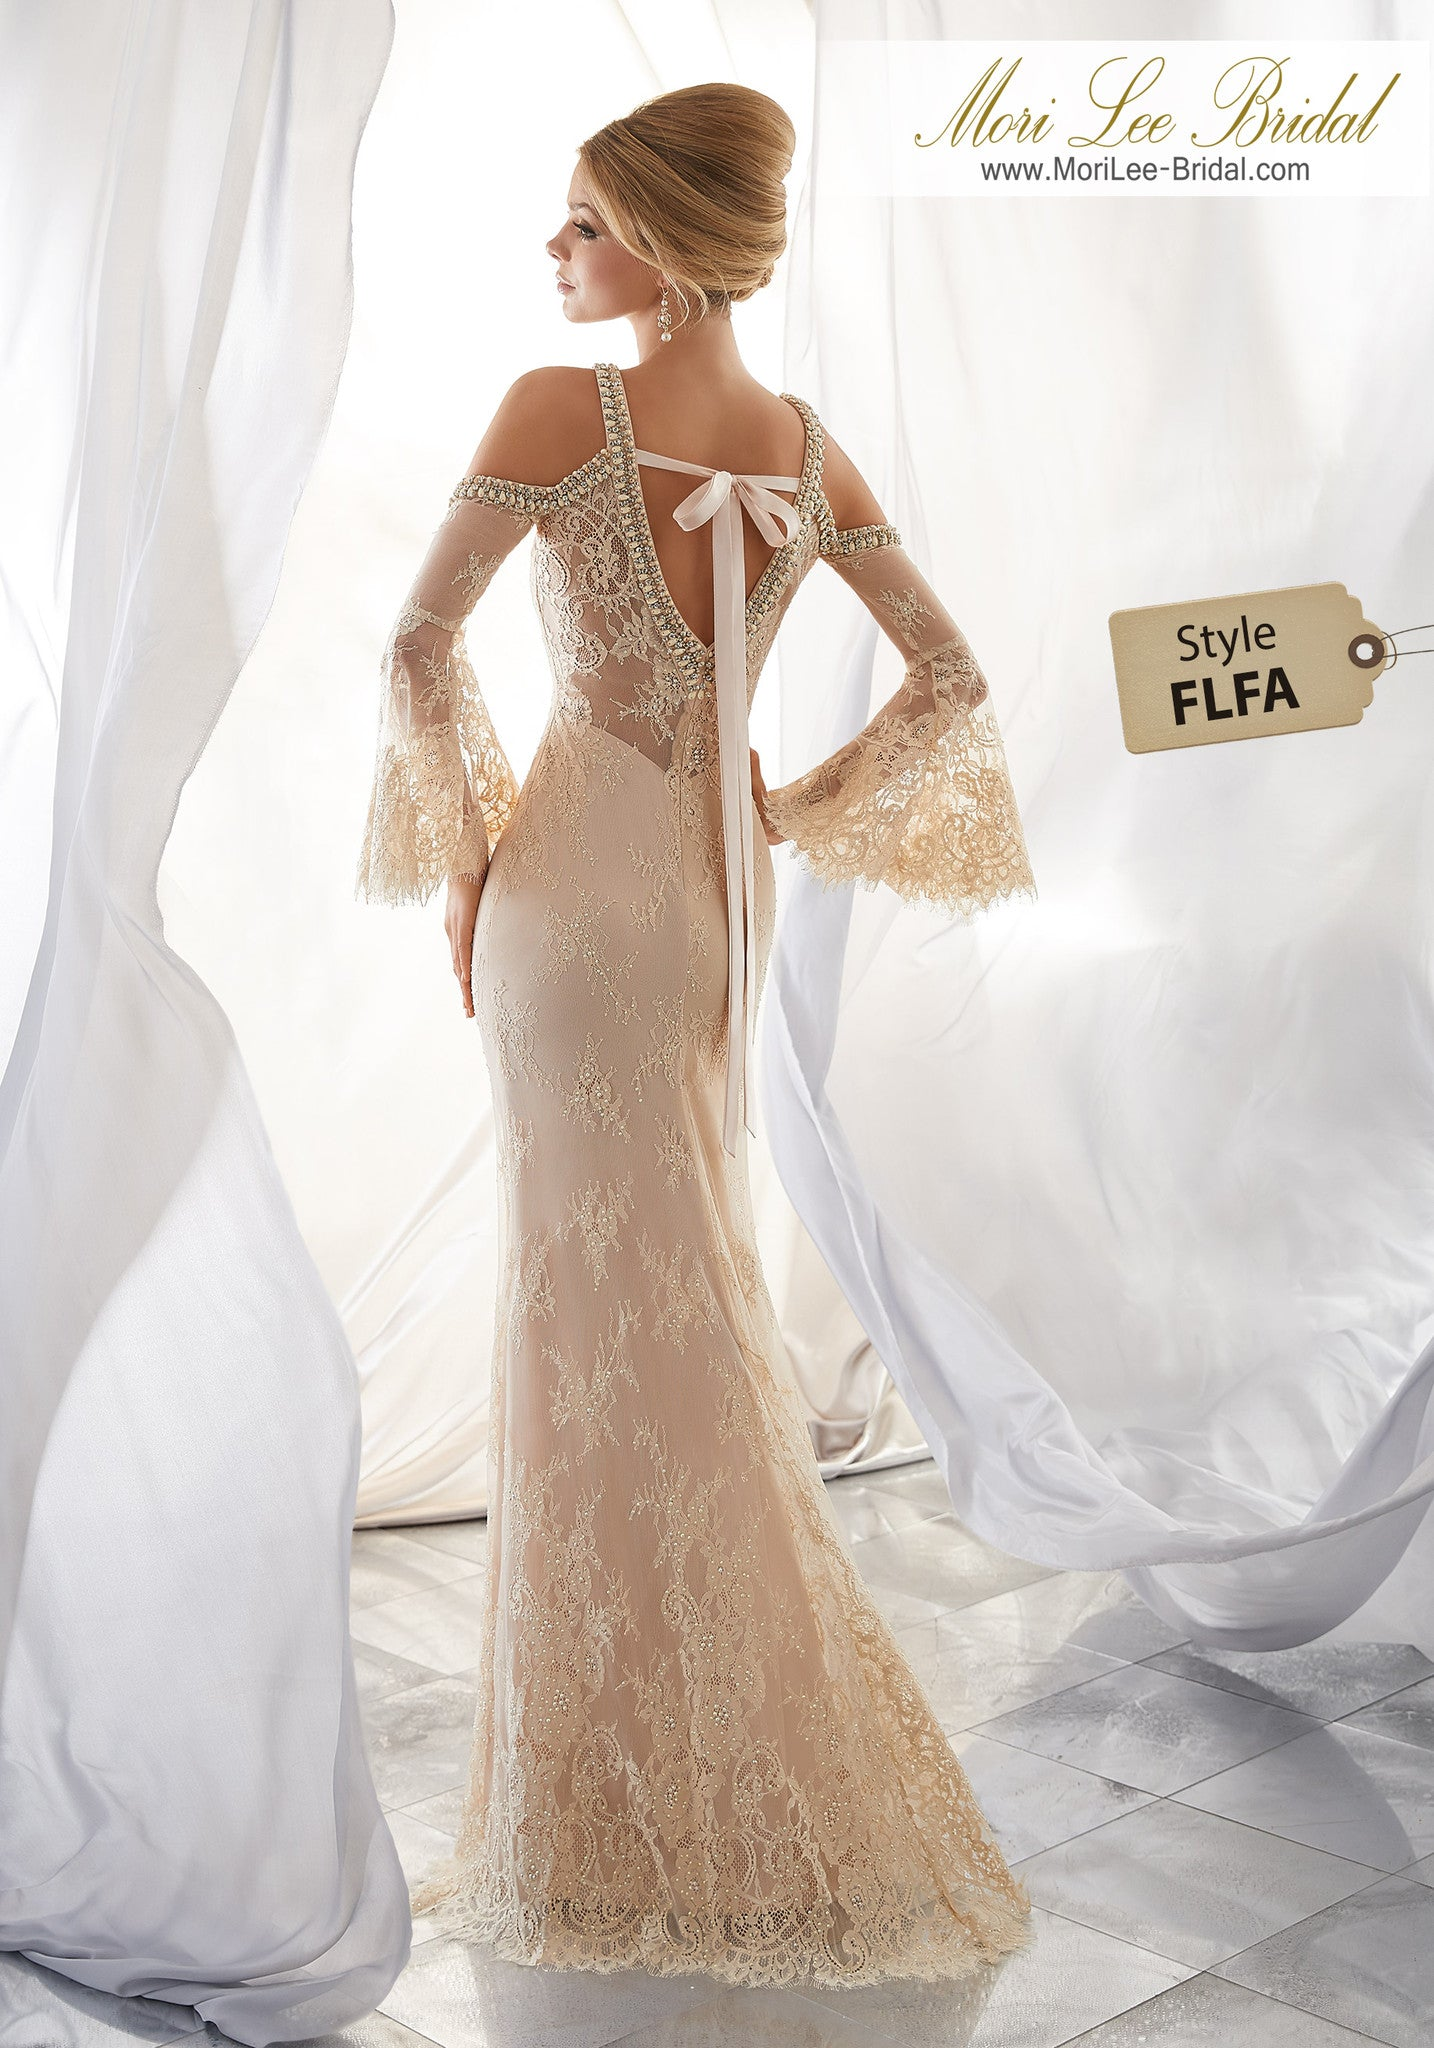 FLFA - Mori Lee Bridal